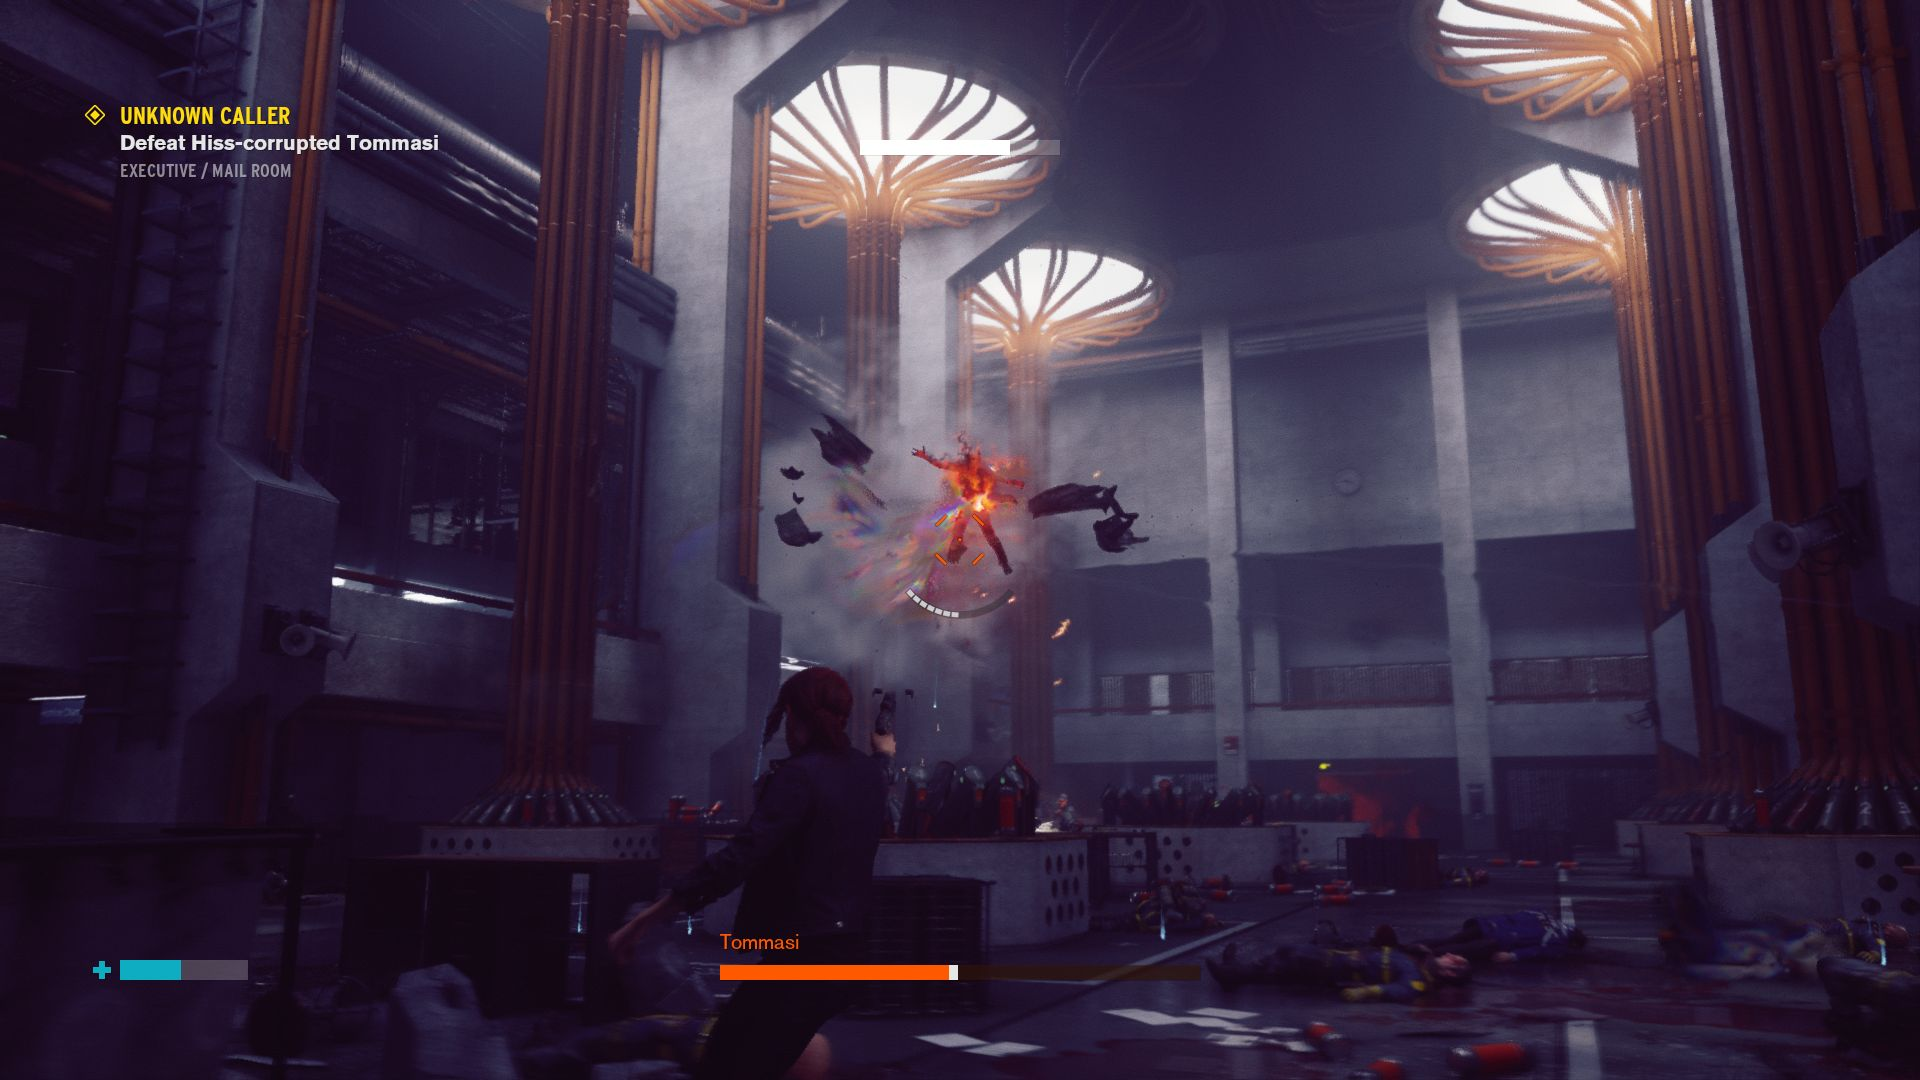 Gameplay of the game